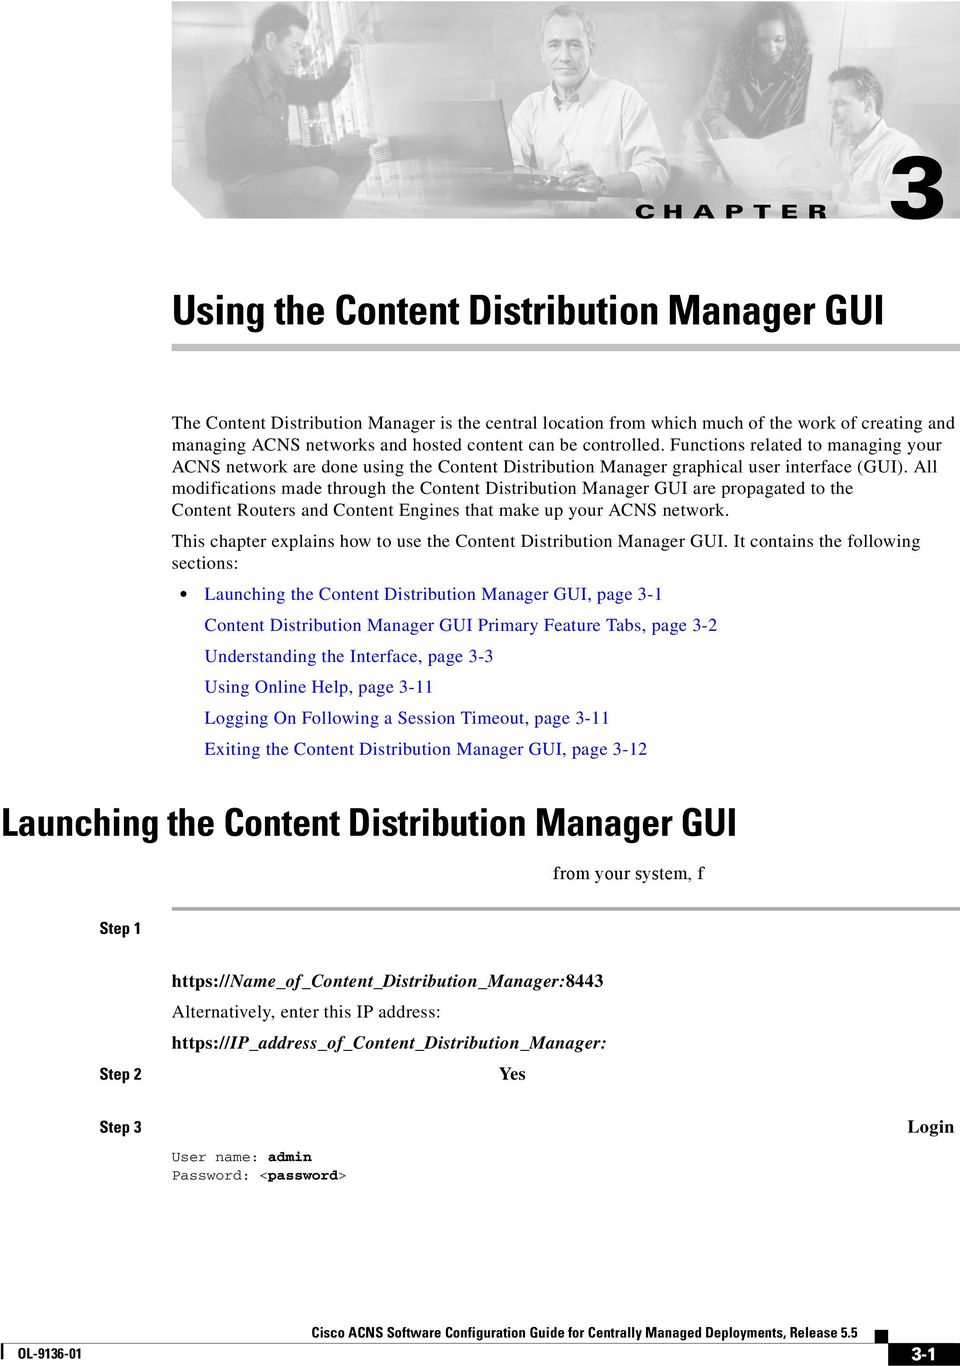 All modifications made through the Content Distribution Manager GUI are propagated to the Content Routers and Content Engines that make up your ACNS network.